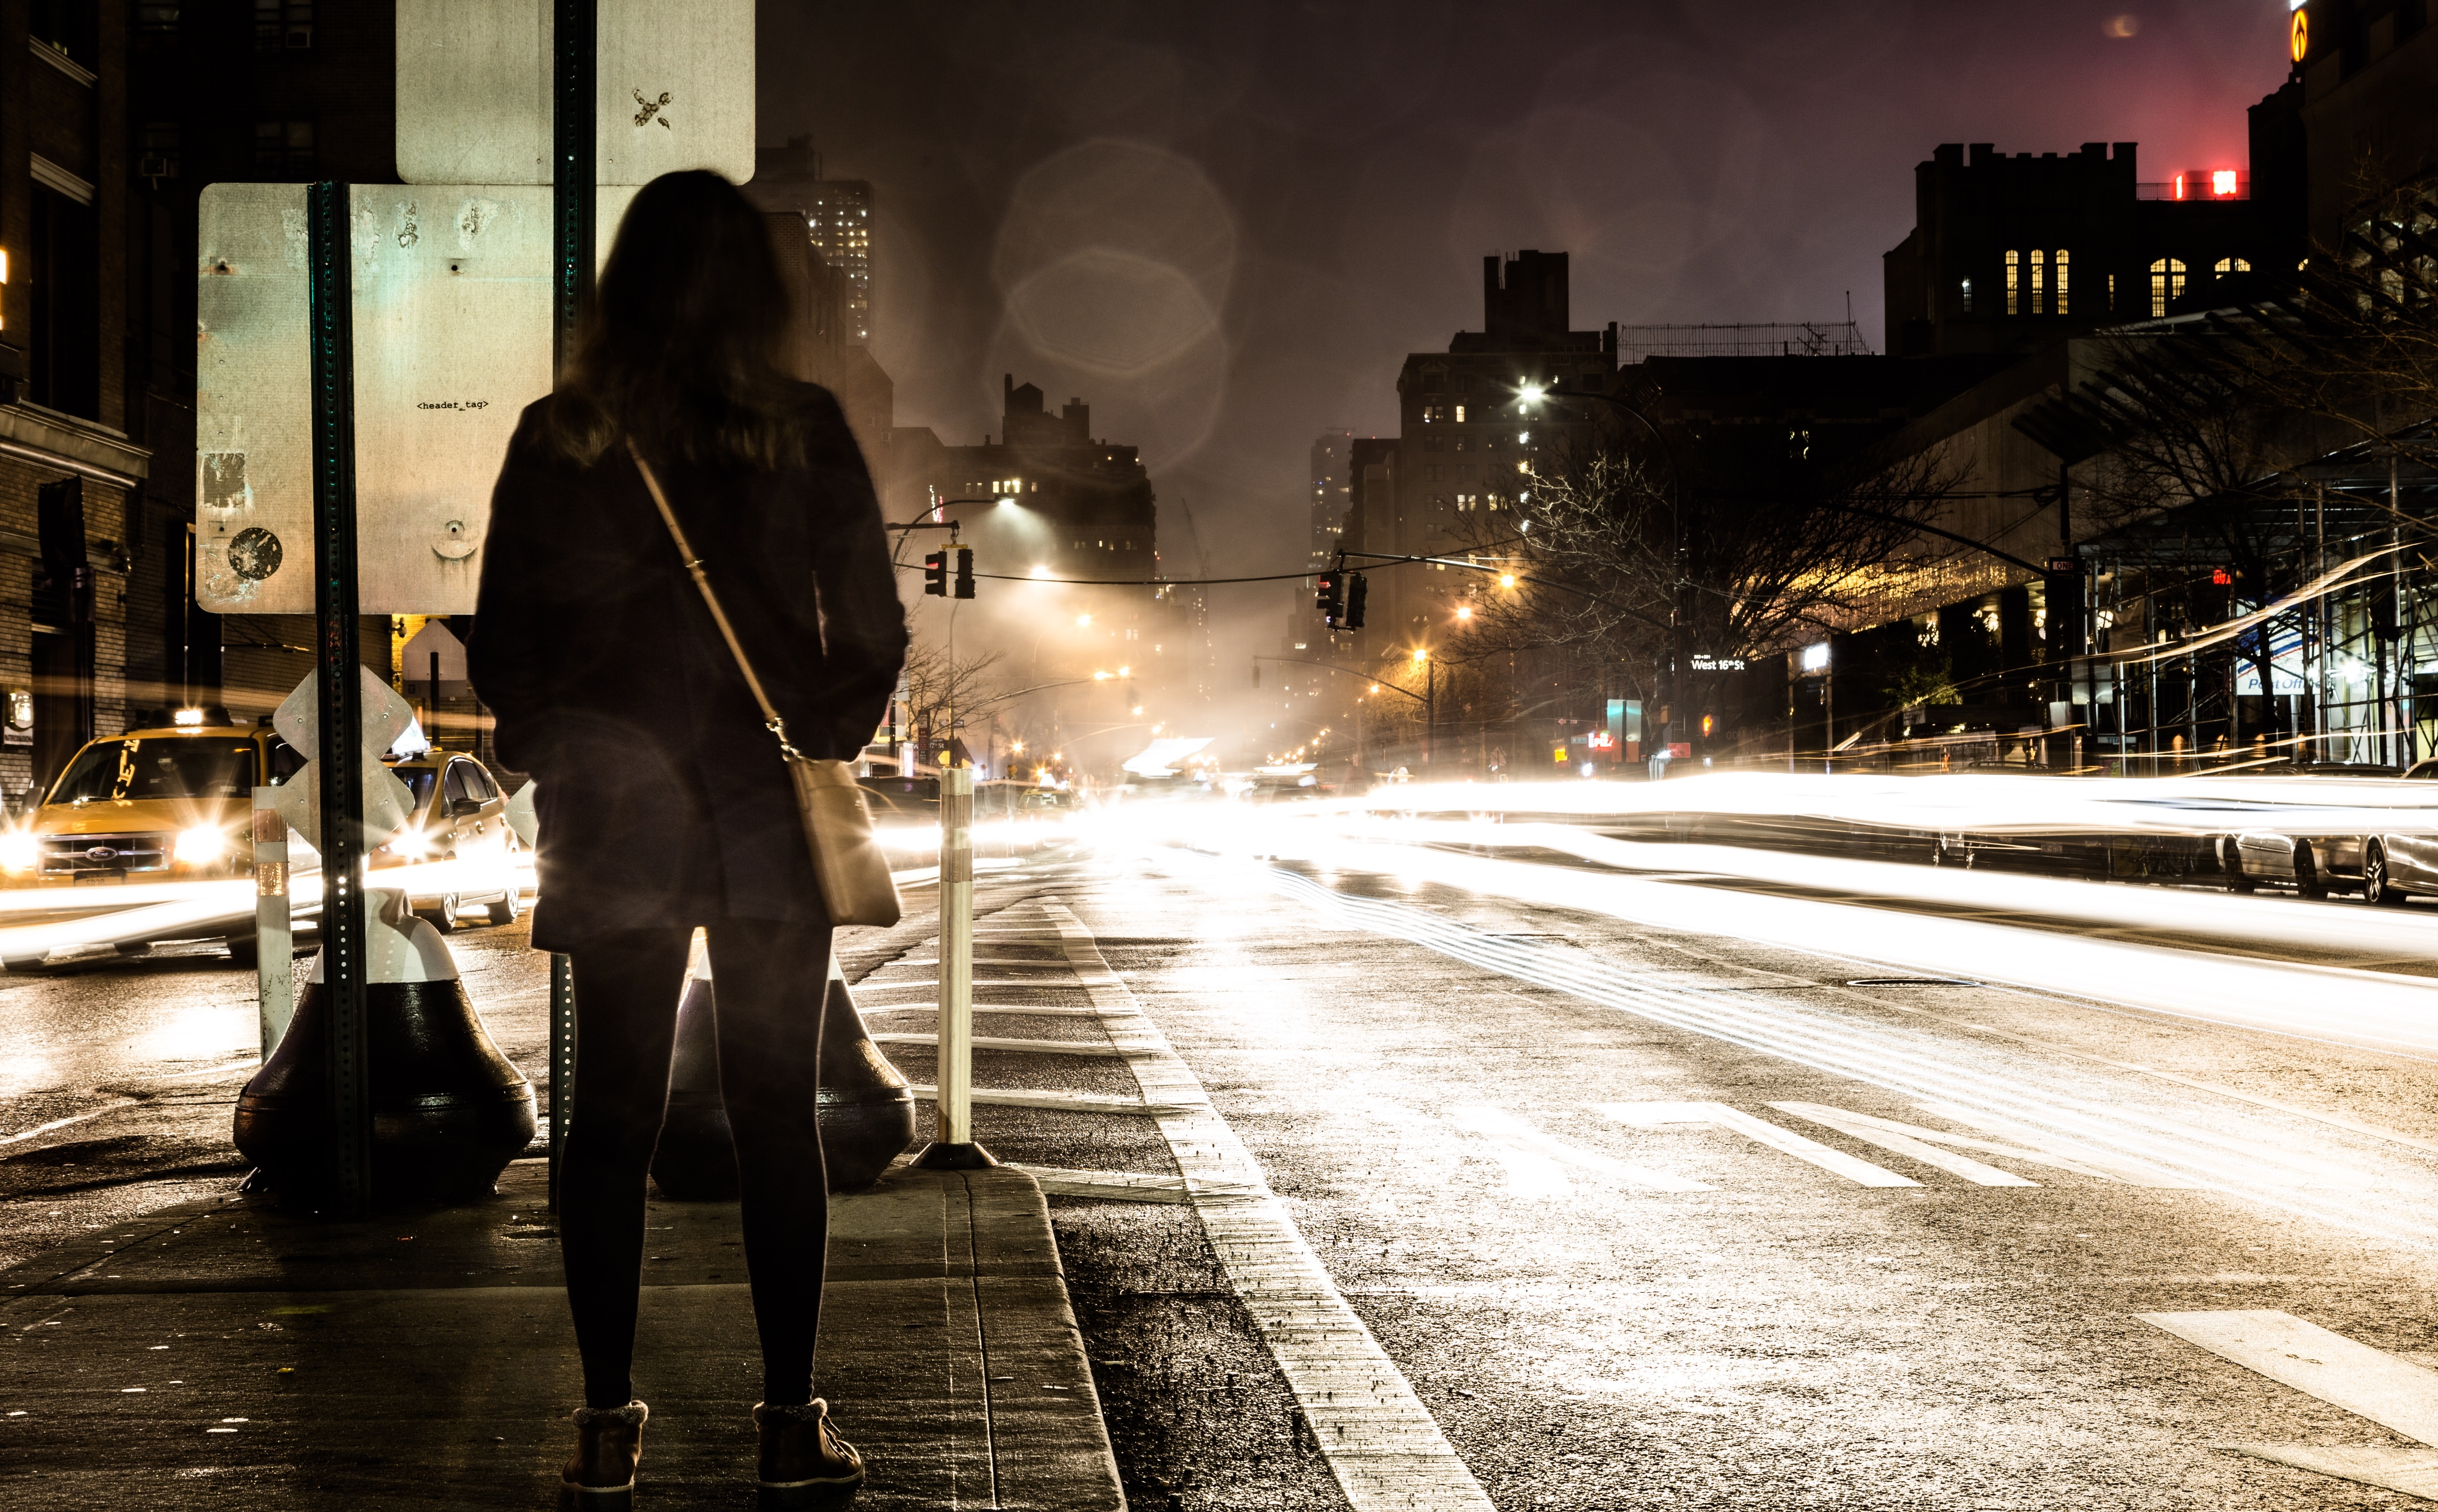 A woman with a leather bag waiting to cross the street in New York at night